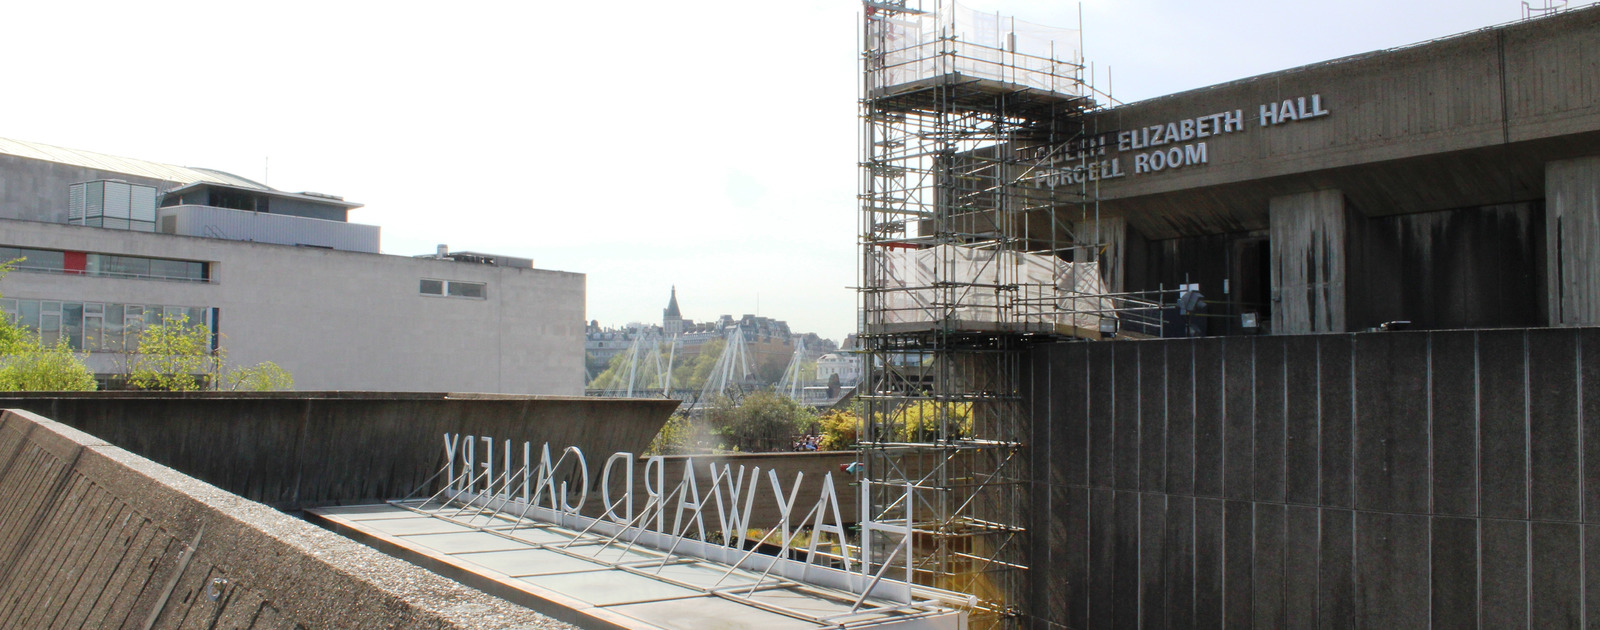 Outside view of the Queen Elizabeth Hall and Hayward Gallery refurbishment at the Southbank Centre